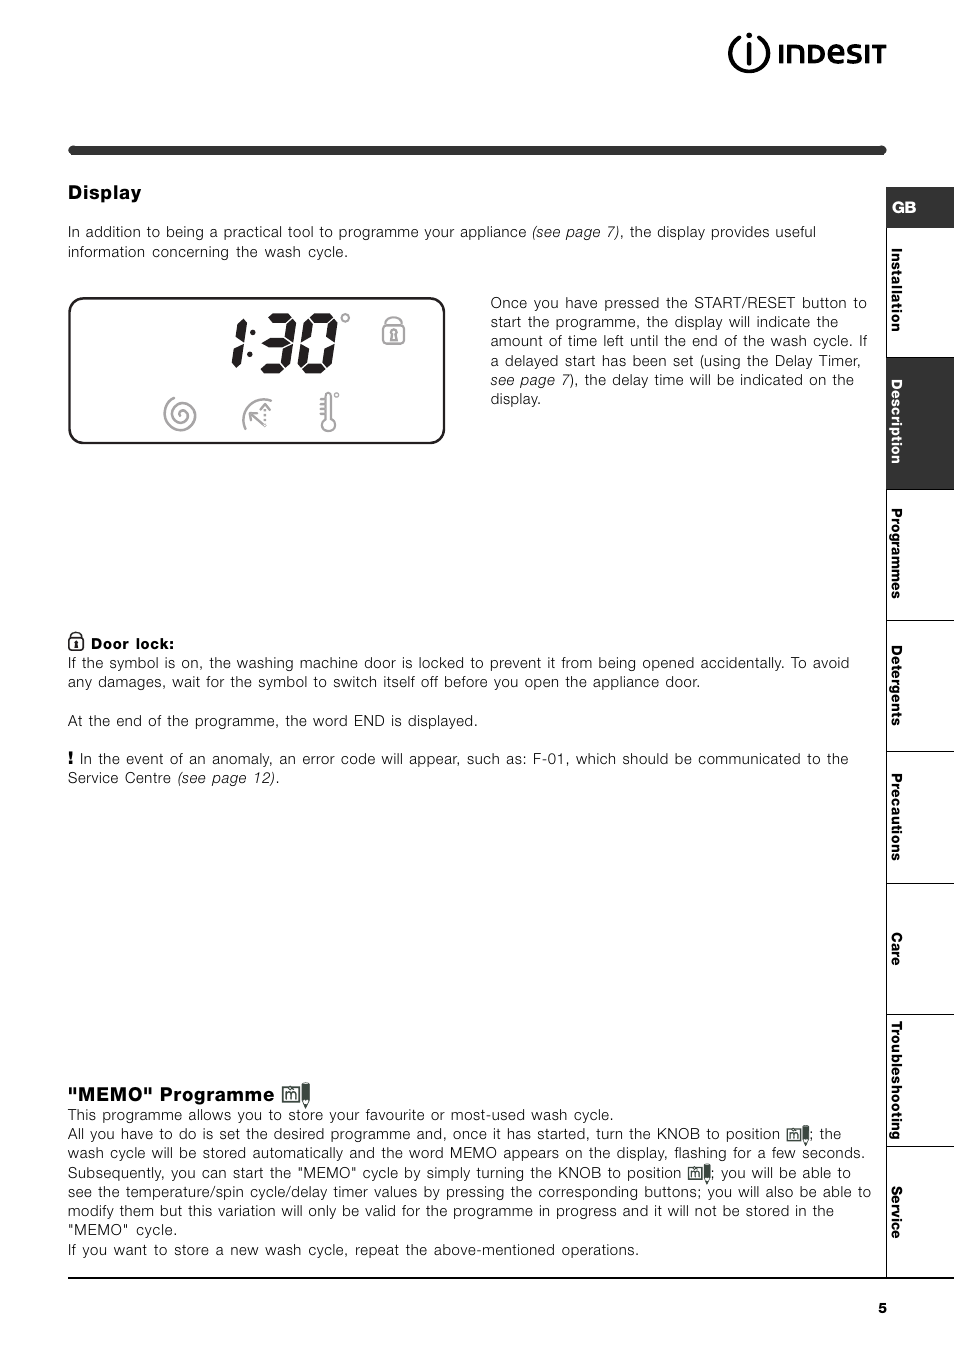 Display indesit wise 107 x user manual page 5 60 buycottarizona Choice Image